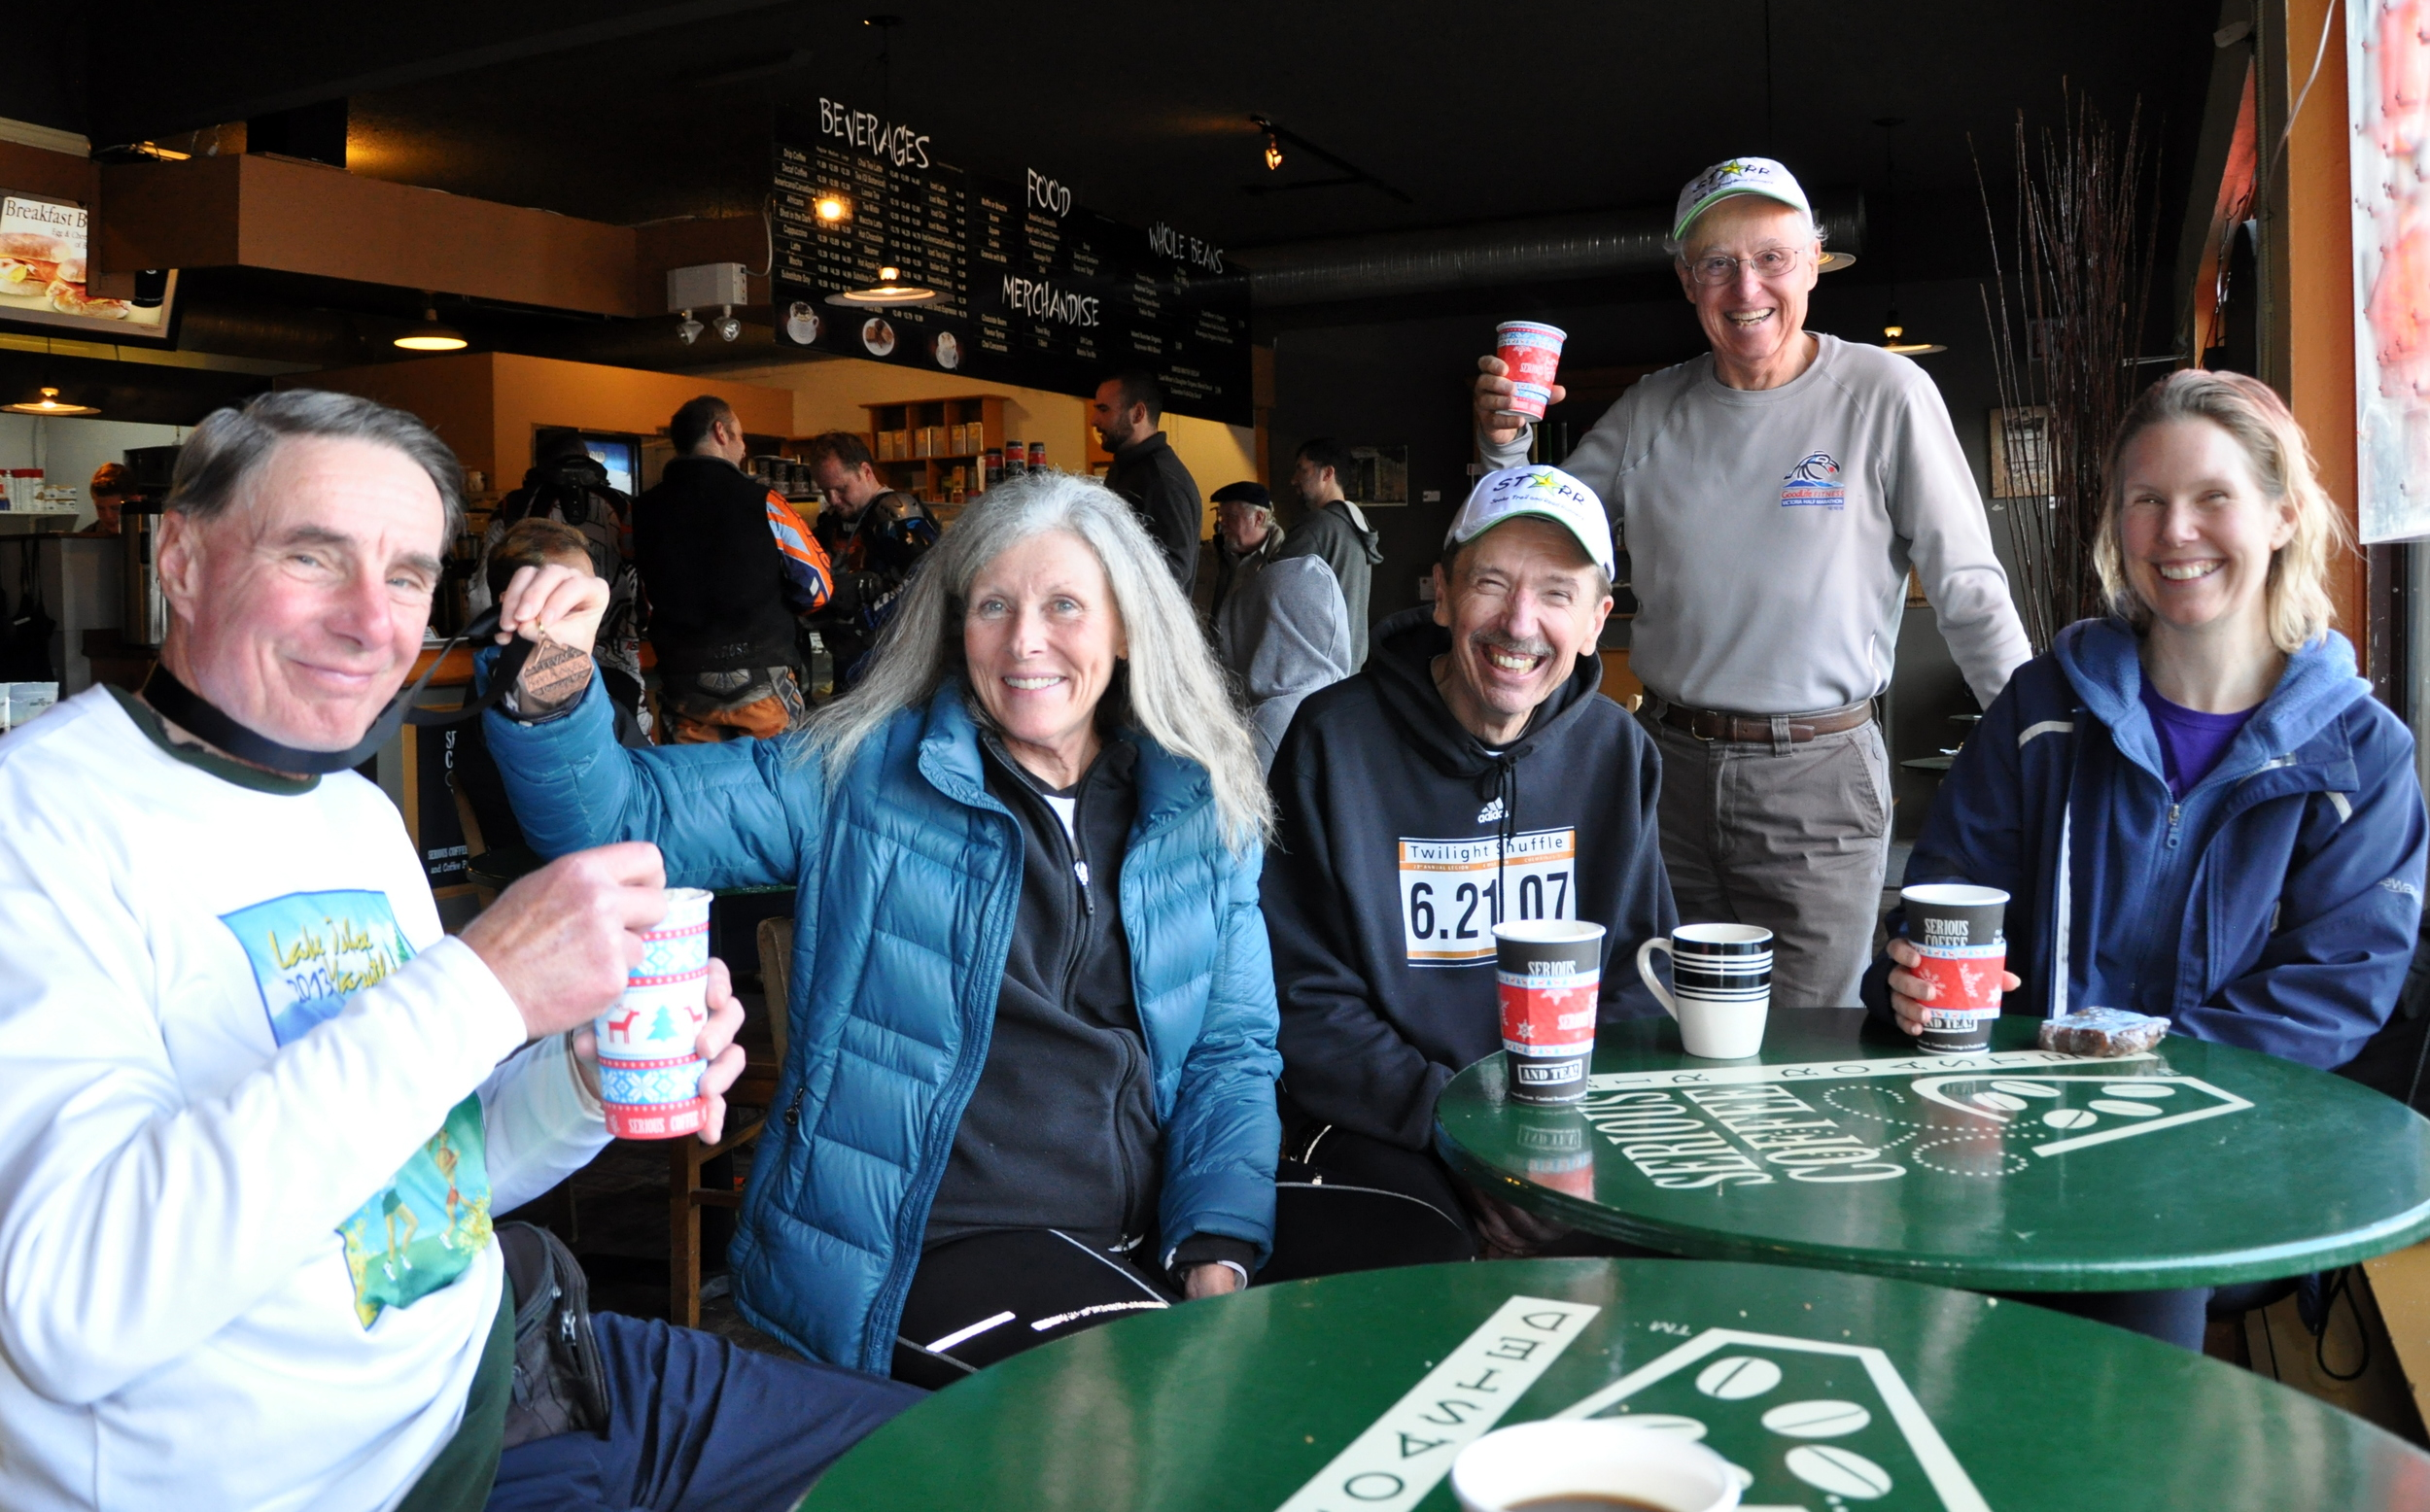 the Starr gang post race at the 2014 Cobble Hill (Island Series) 10km